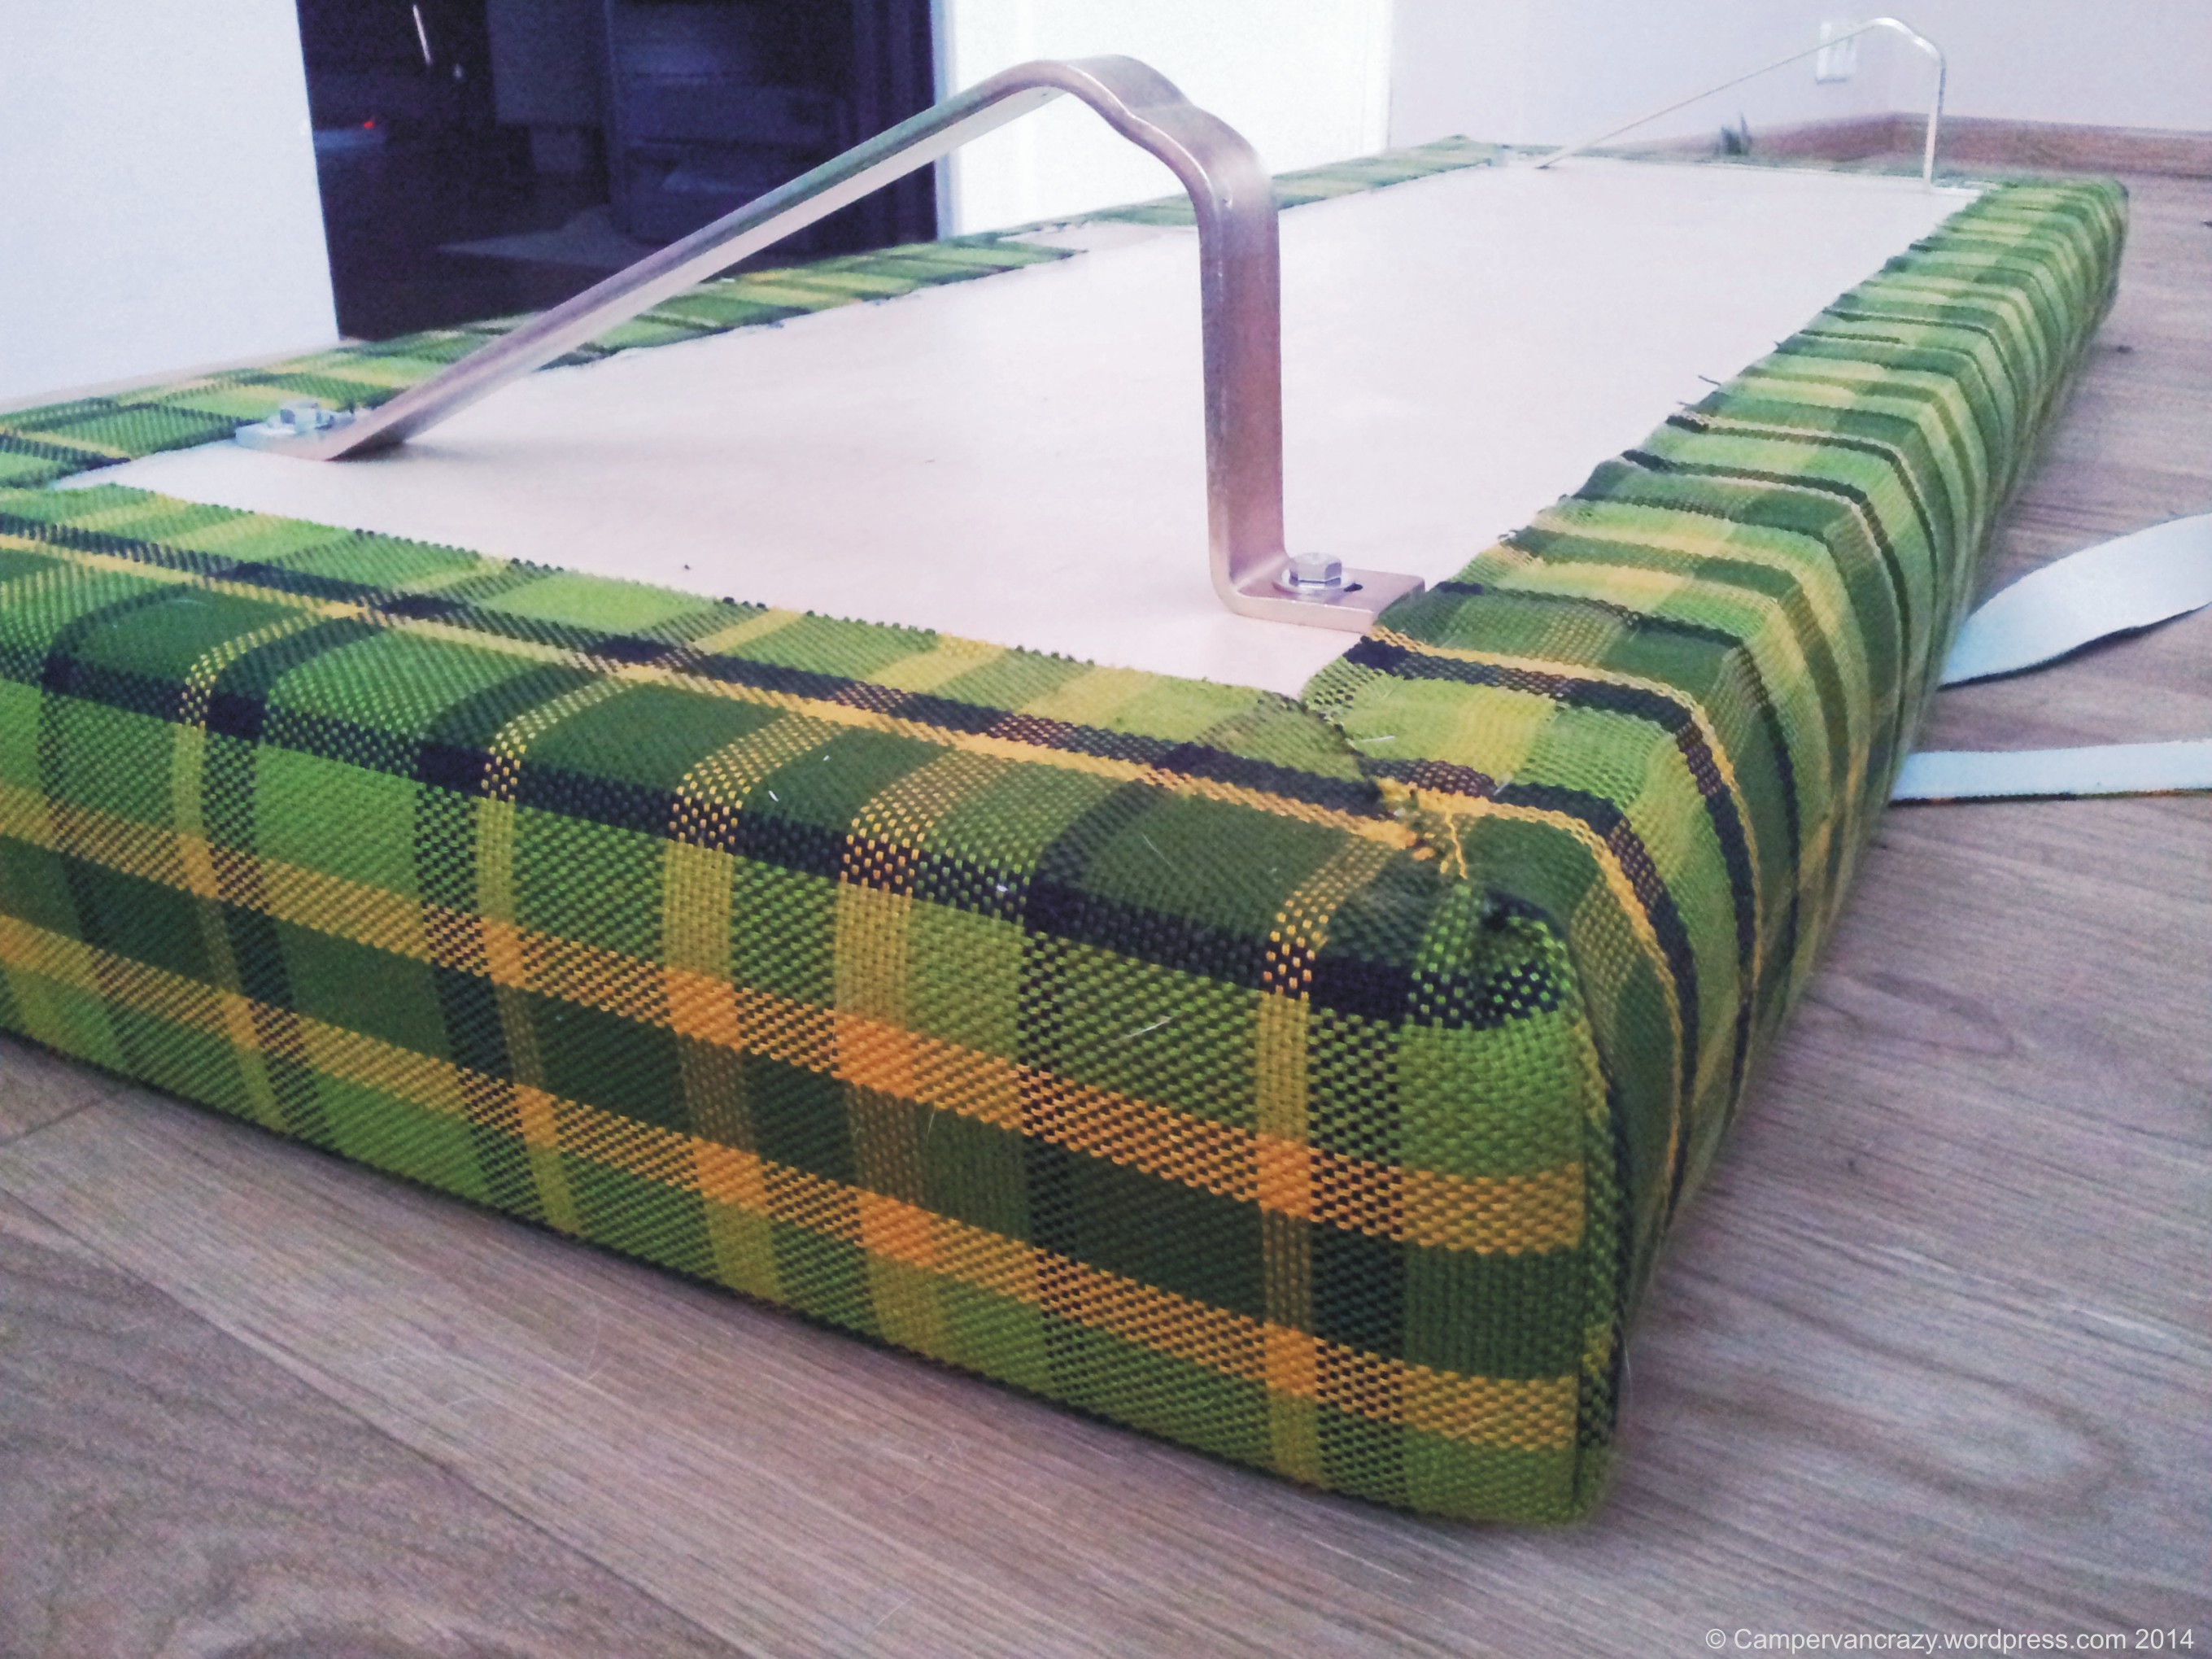 Rock And Roll Bed Part 6 Bench Cushions Campervan Crazy